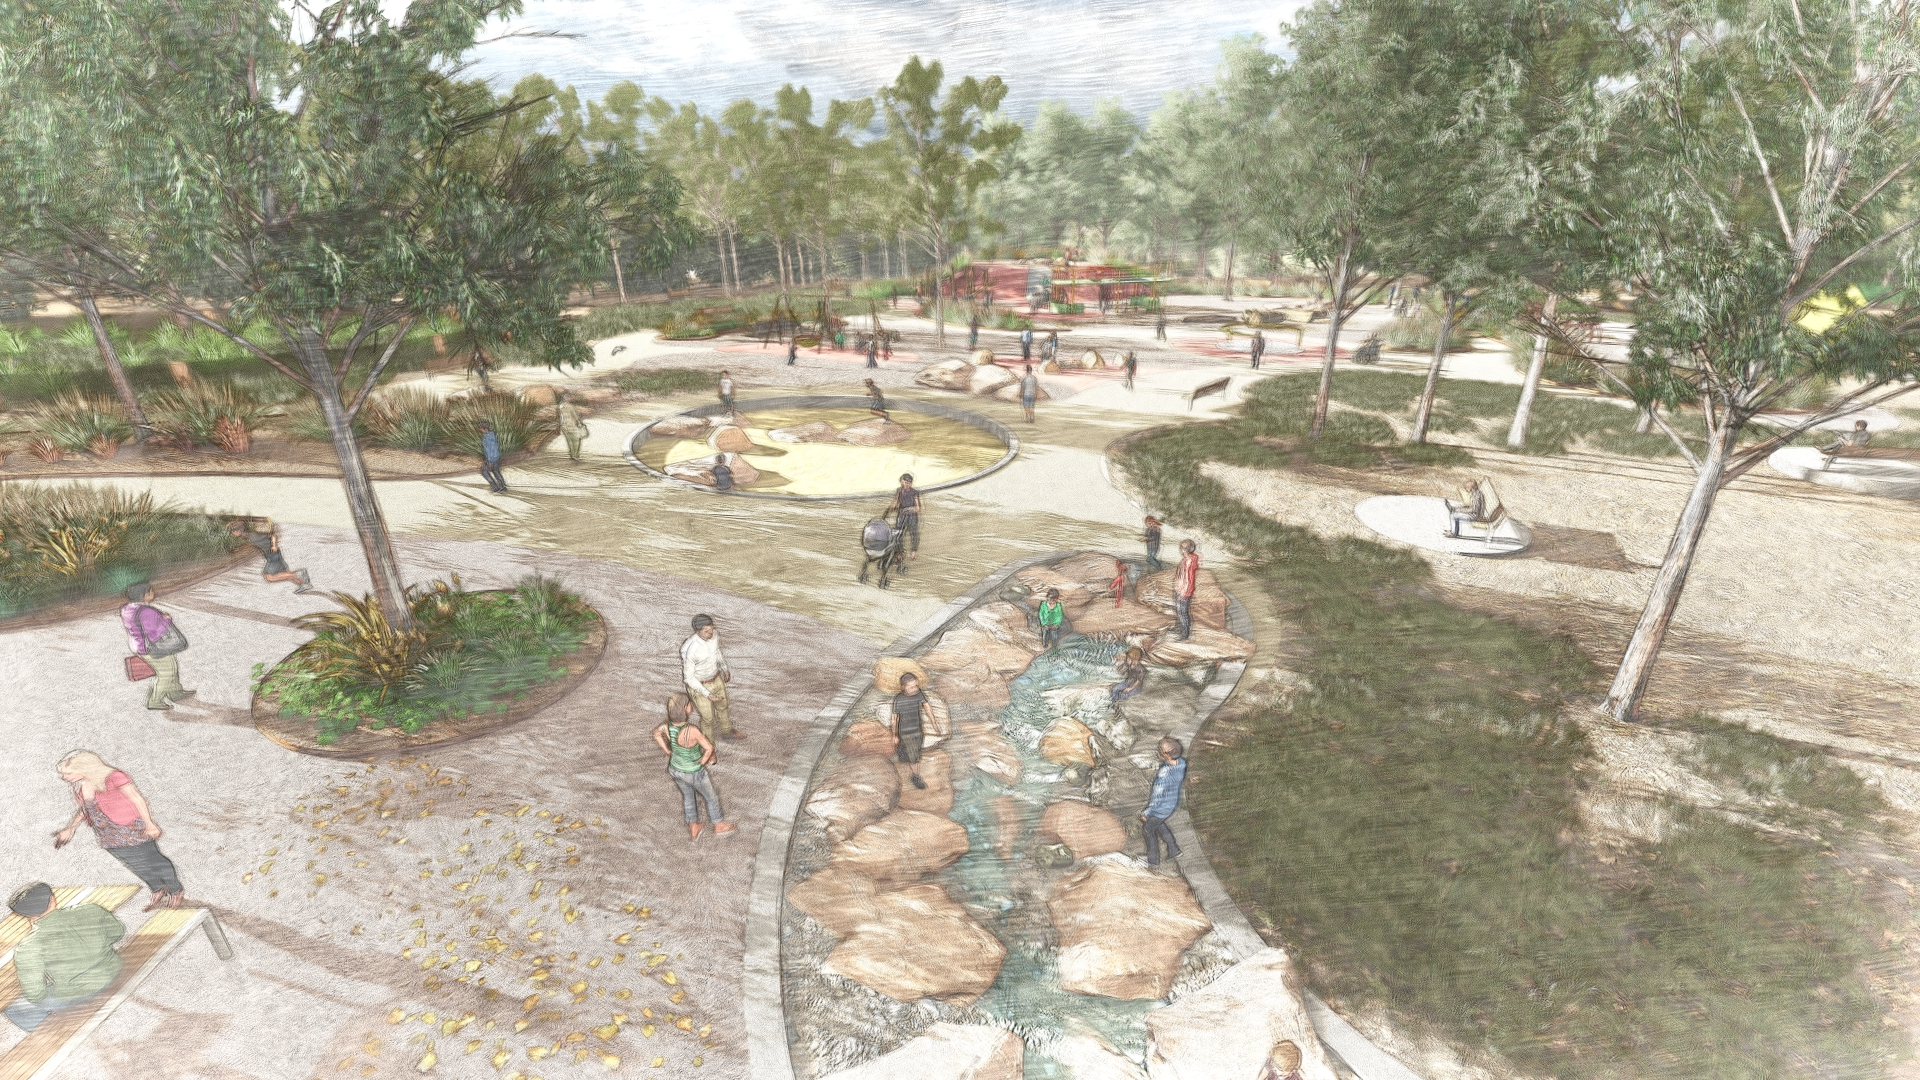 Waterplay with boulders, circular sandpit and play mound in background. Many trees and garden areas with park benches.